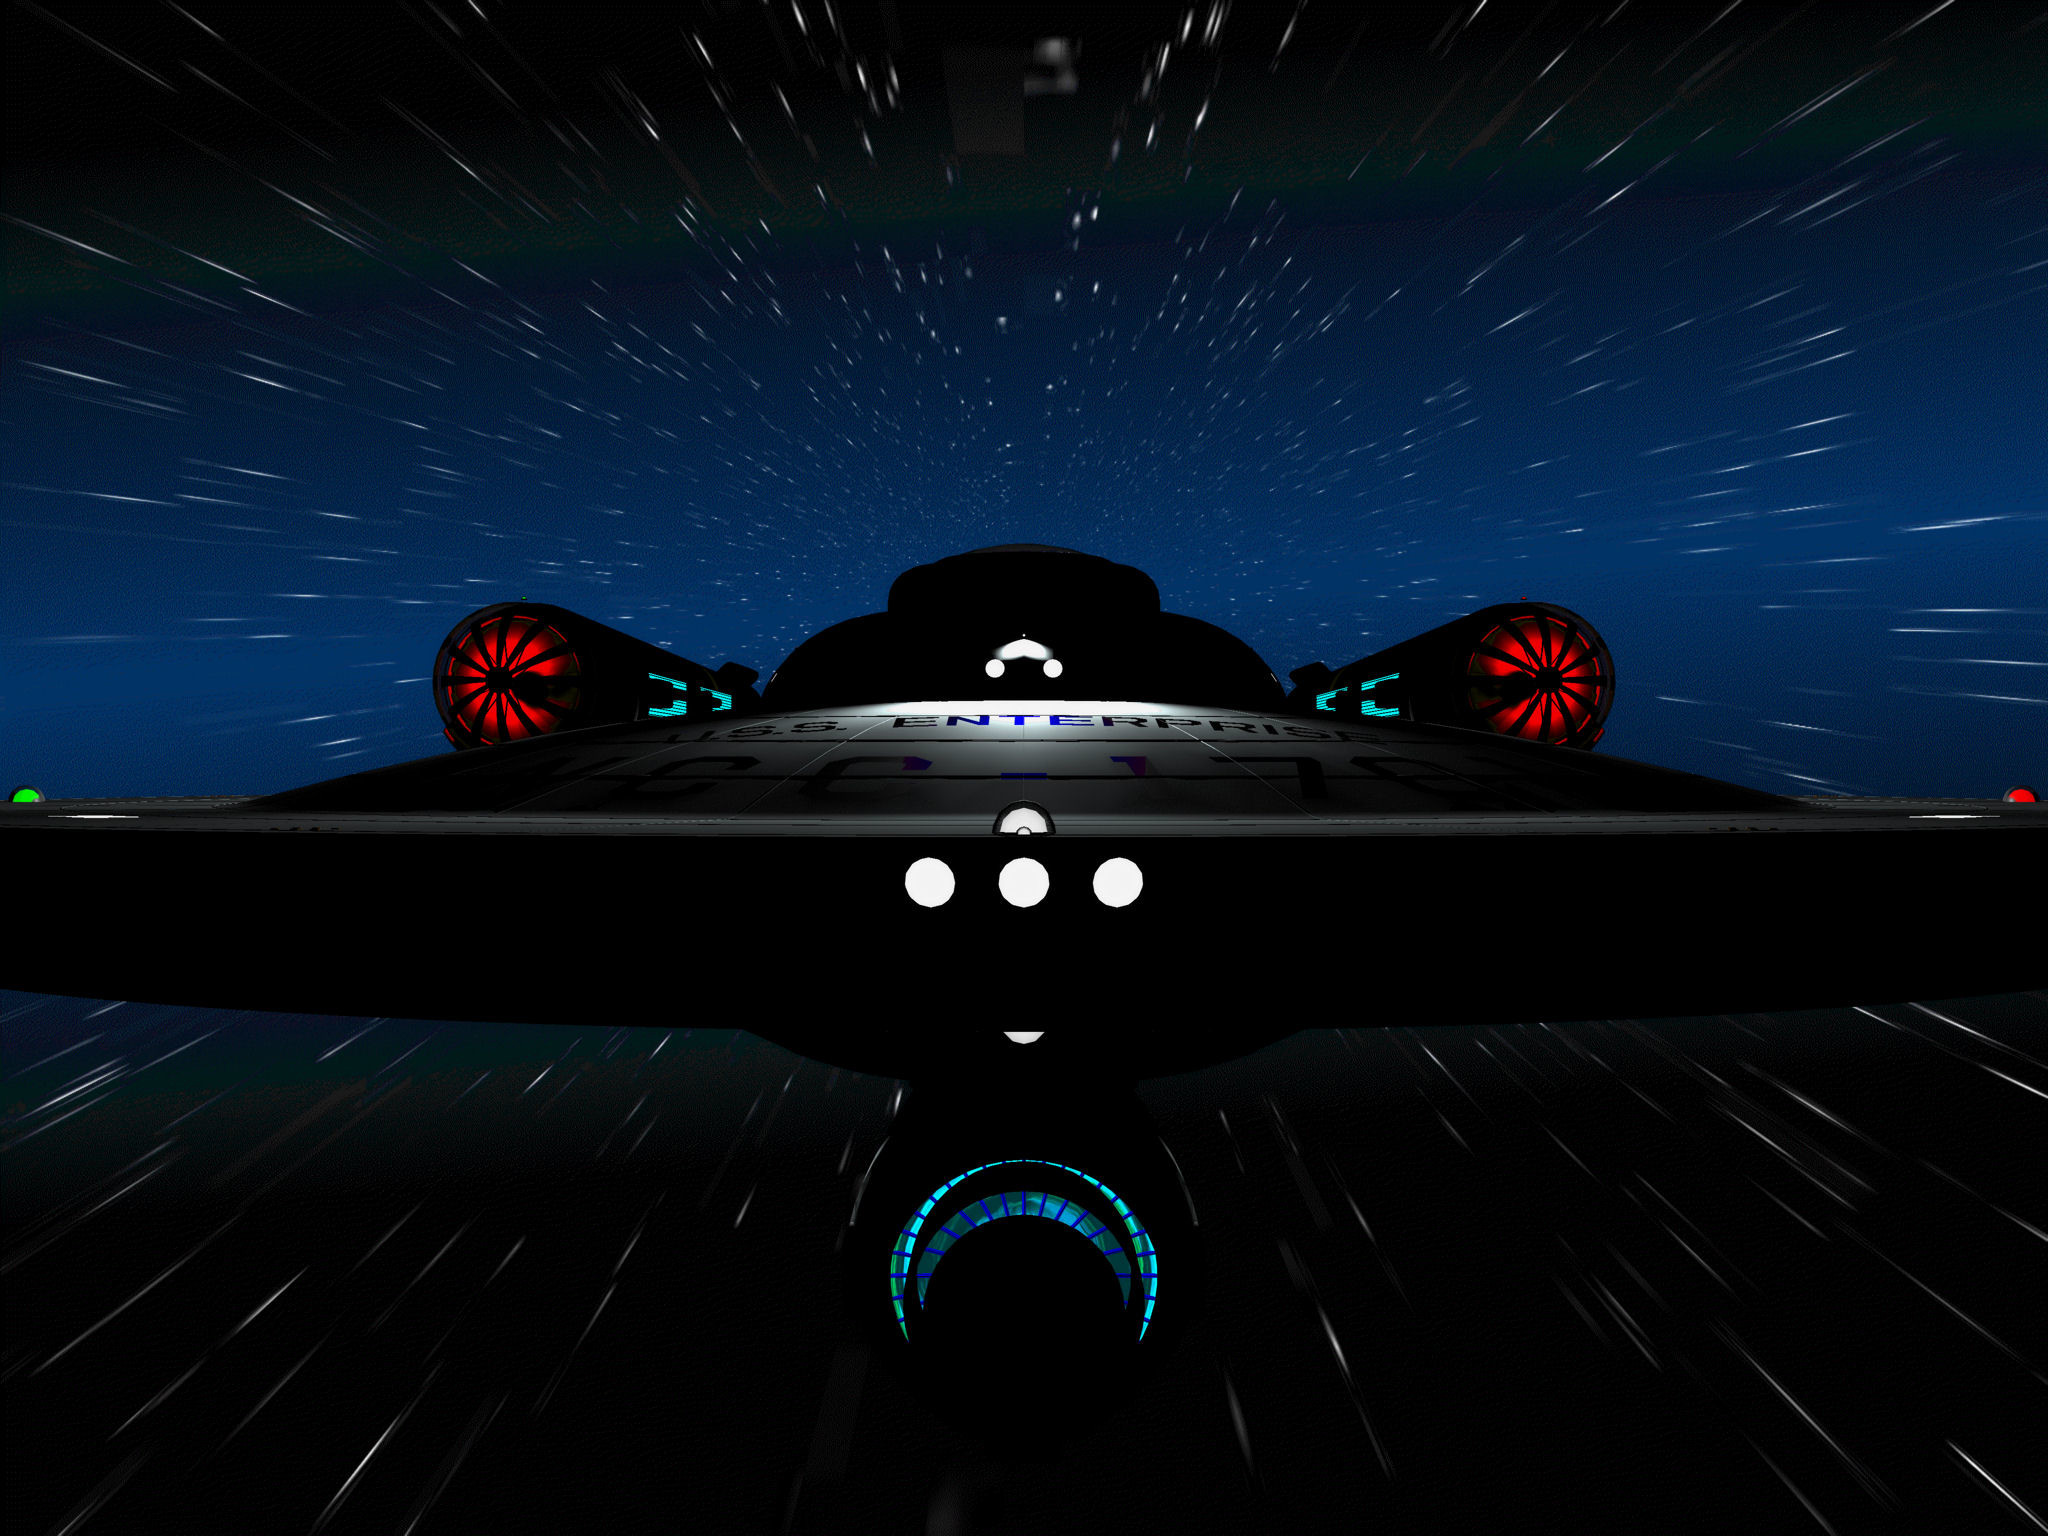 Star Trek Padd Ipad Wallpaper 59 Images